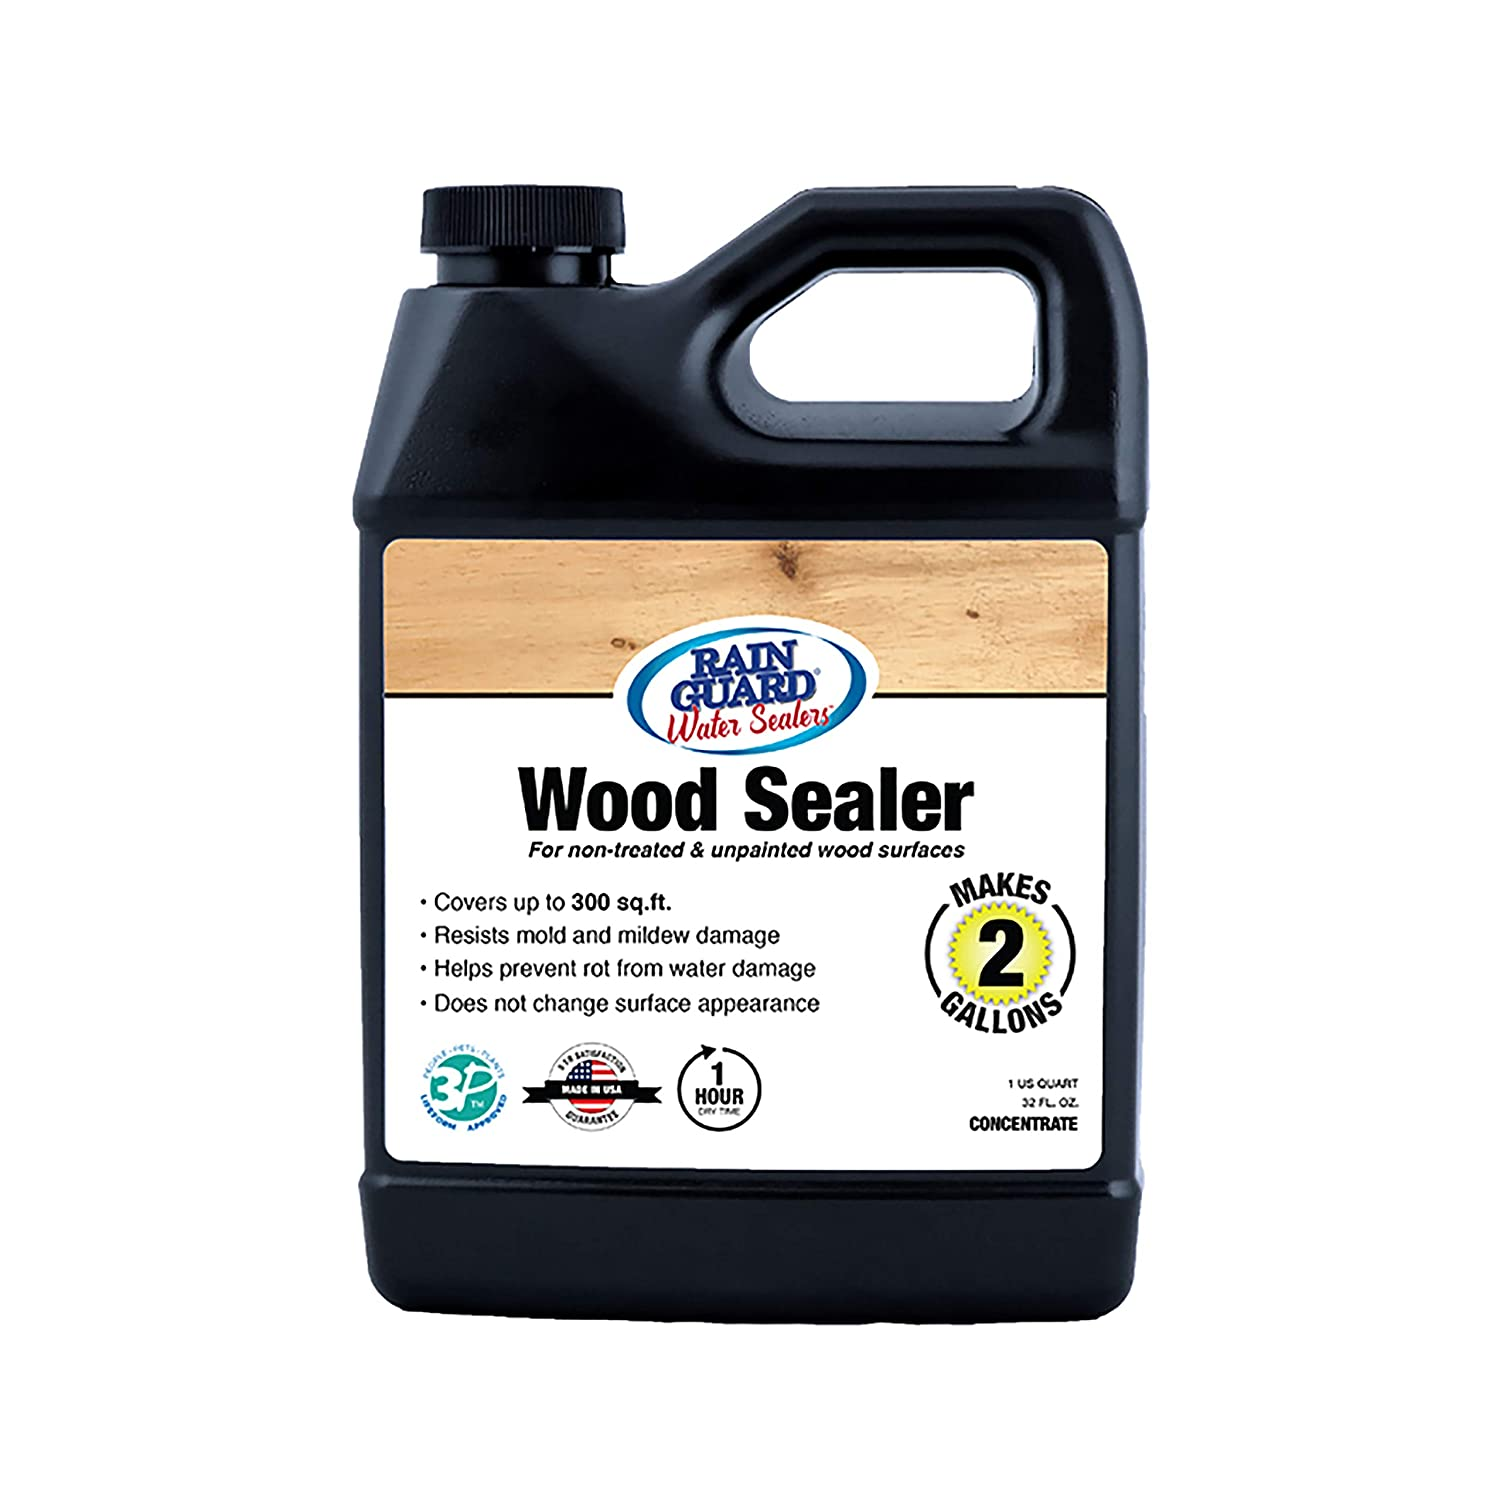 Rain Guard Water Sealers SP-8002 Wood Sealer Concentrate